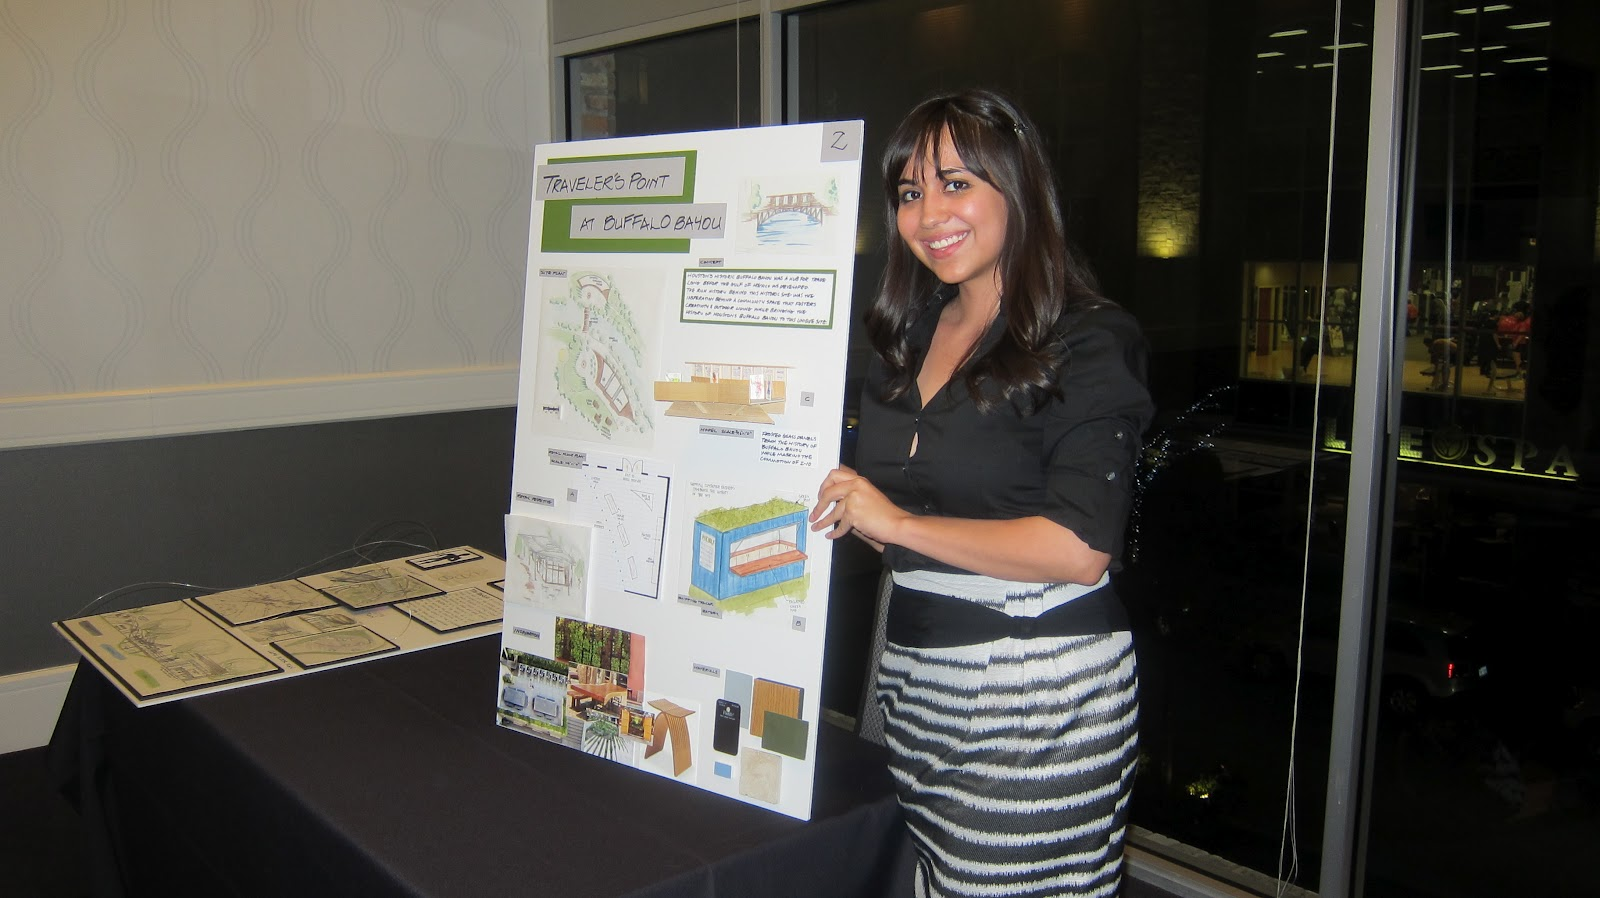 Jaclyns Group Was Awarded 2nd Place In The Charette Competition